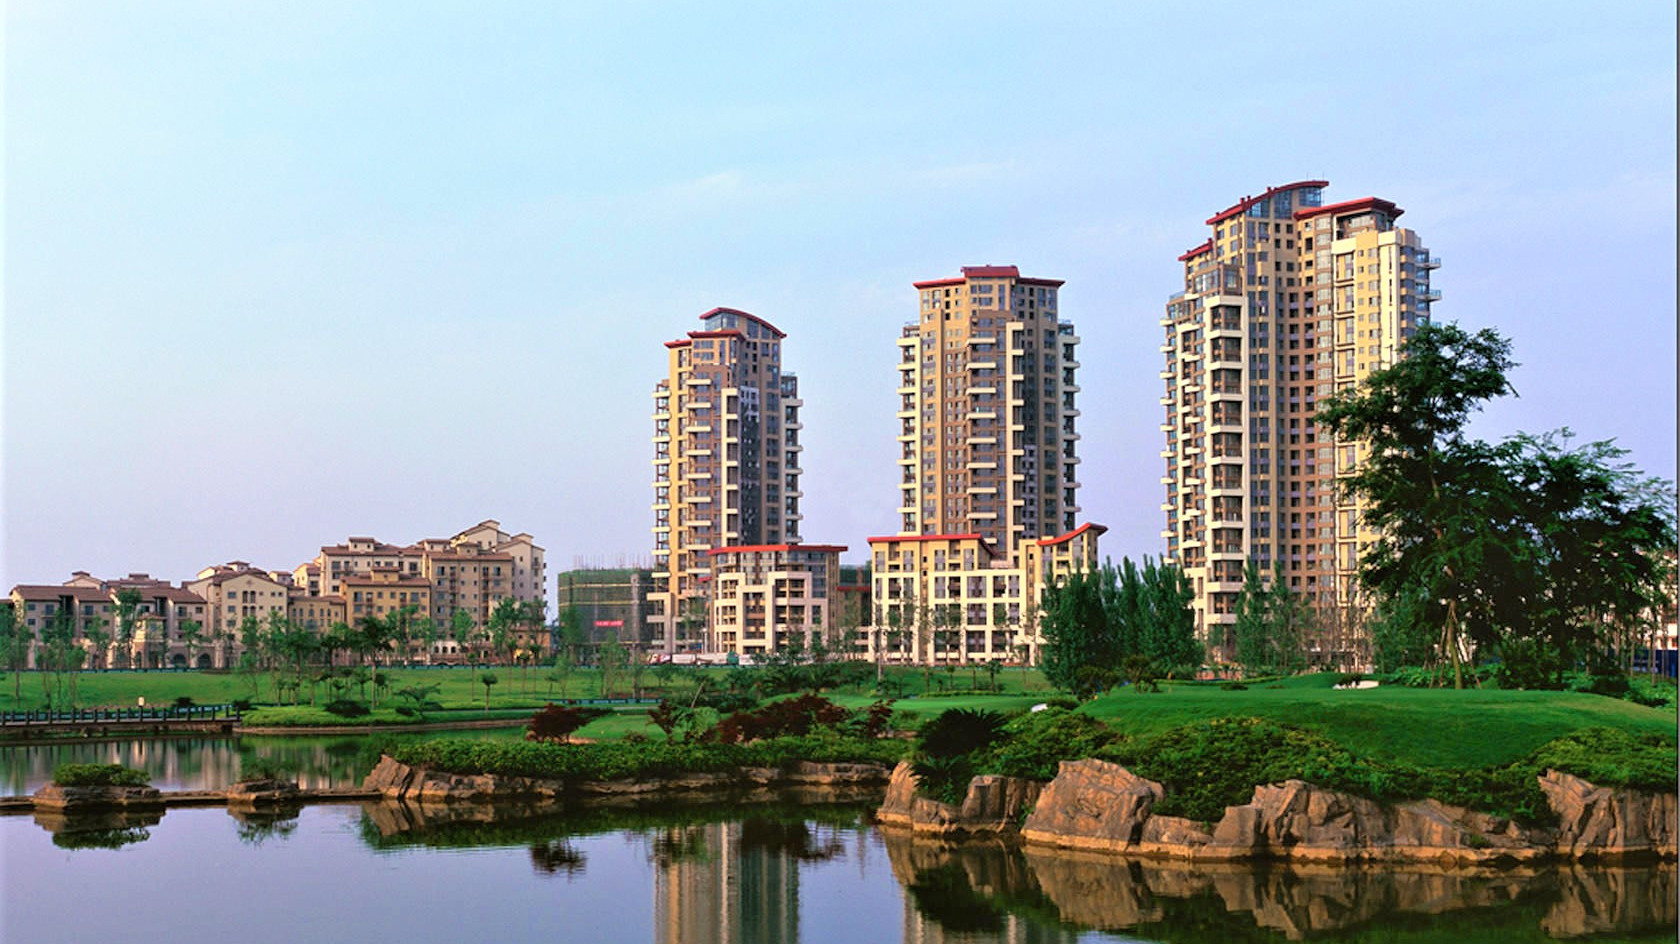 Luxehills Iinternational Golf and Country Club - Chengdu, China